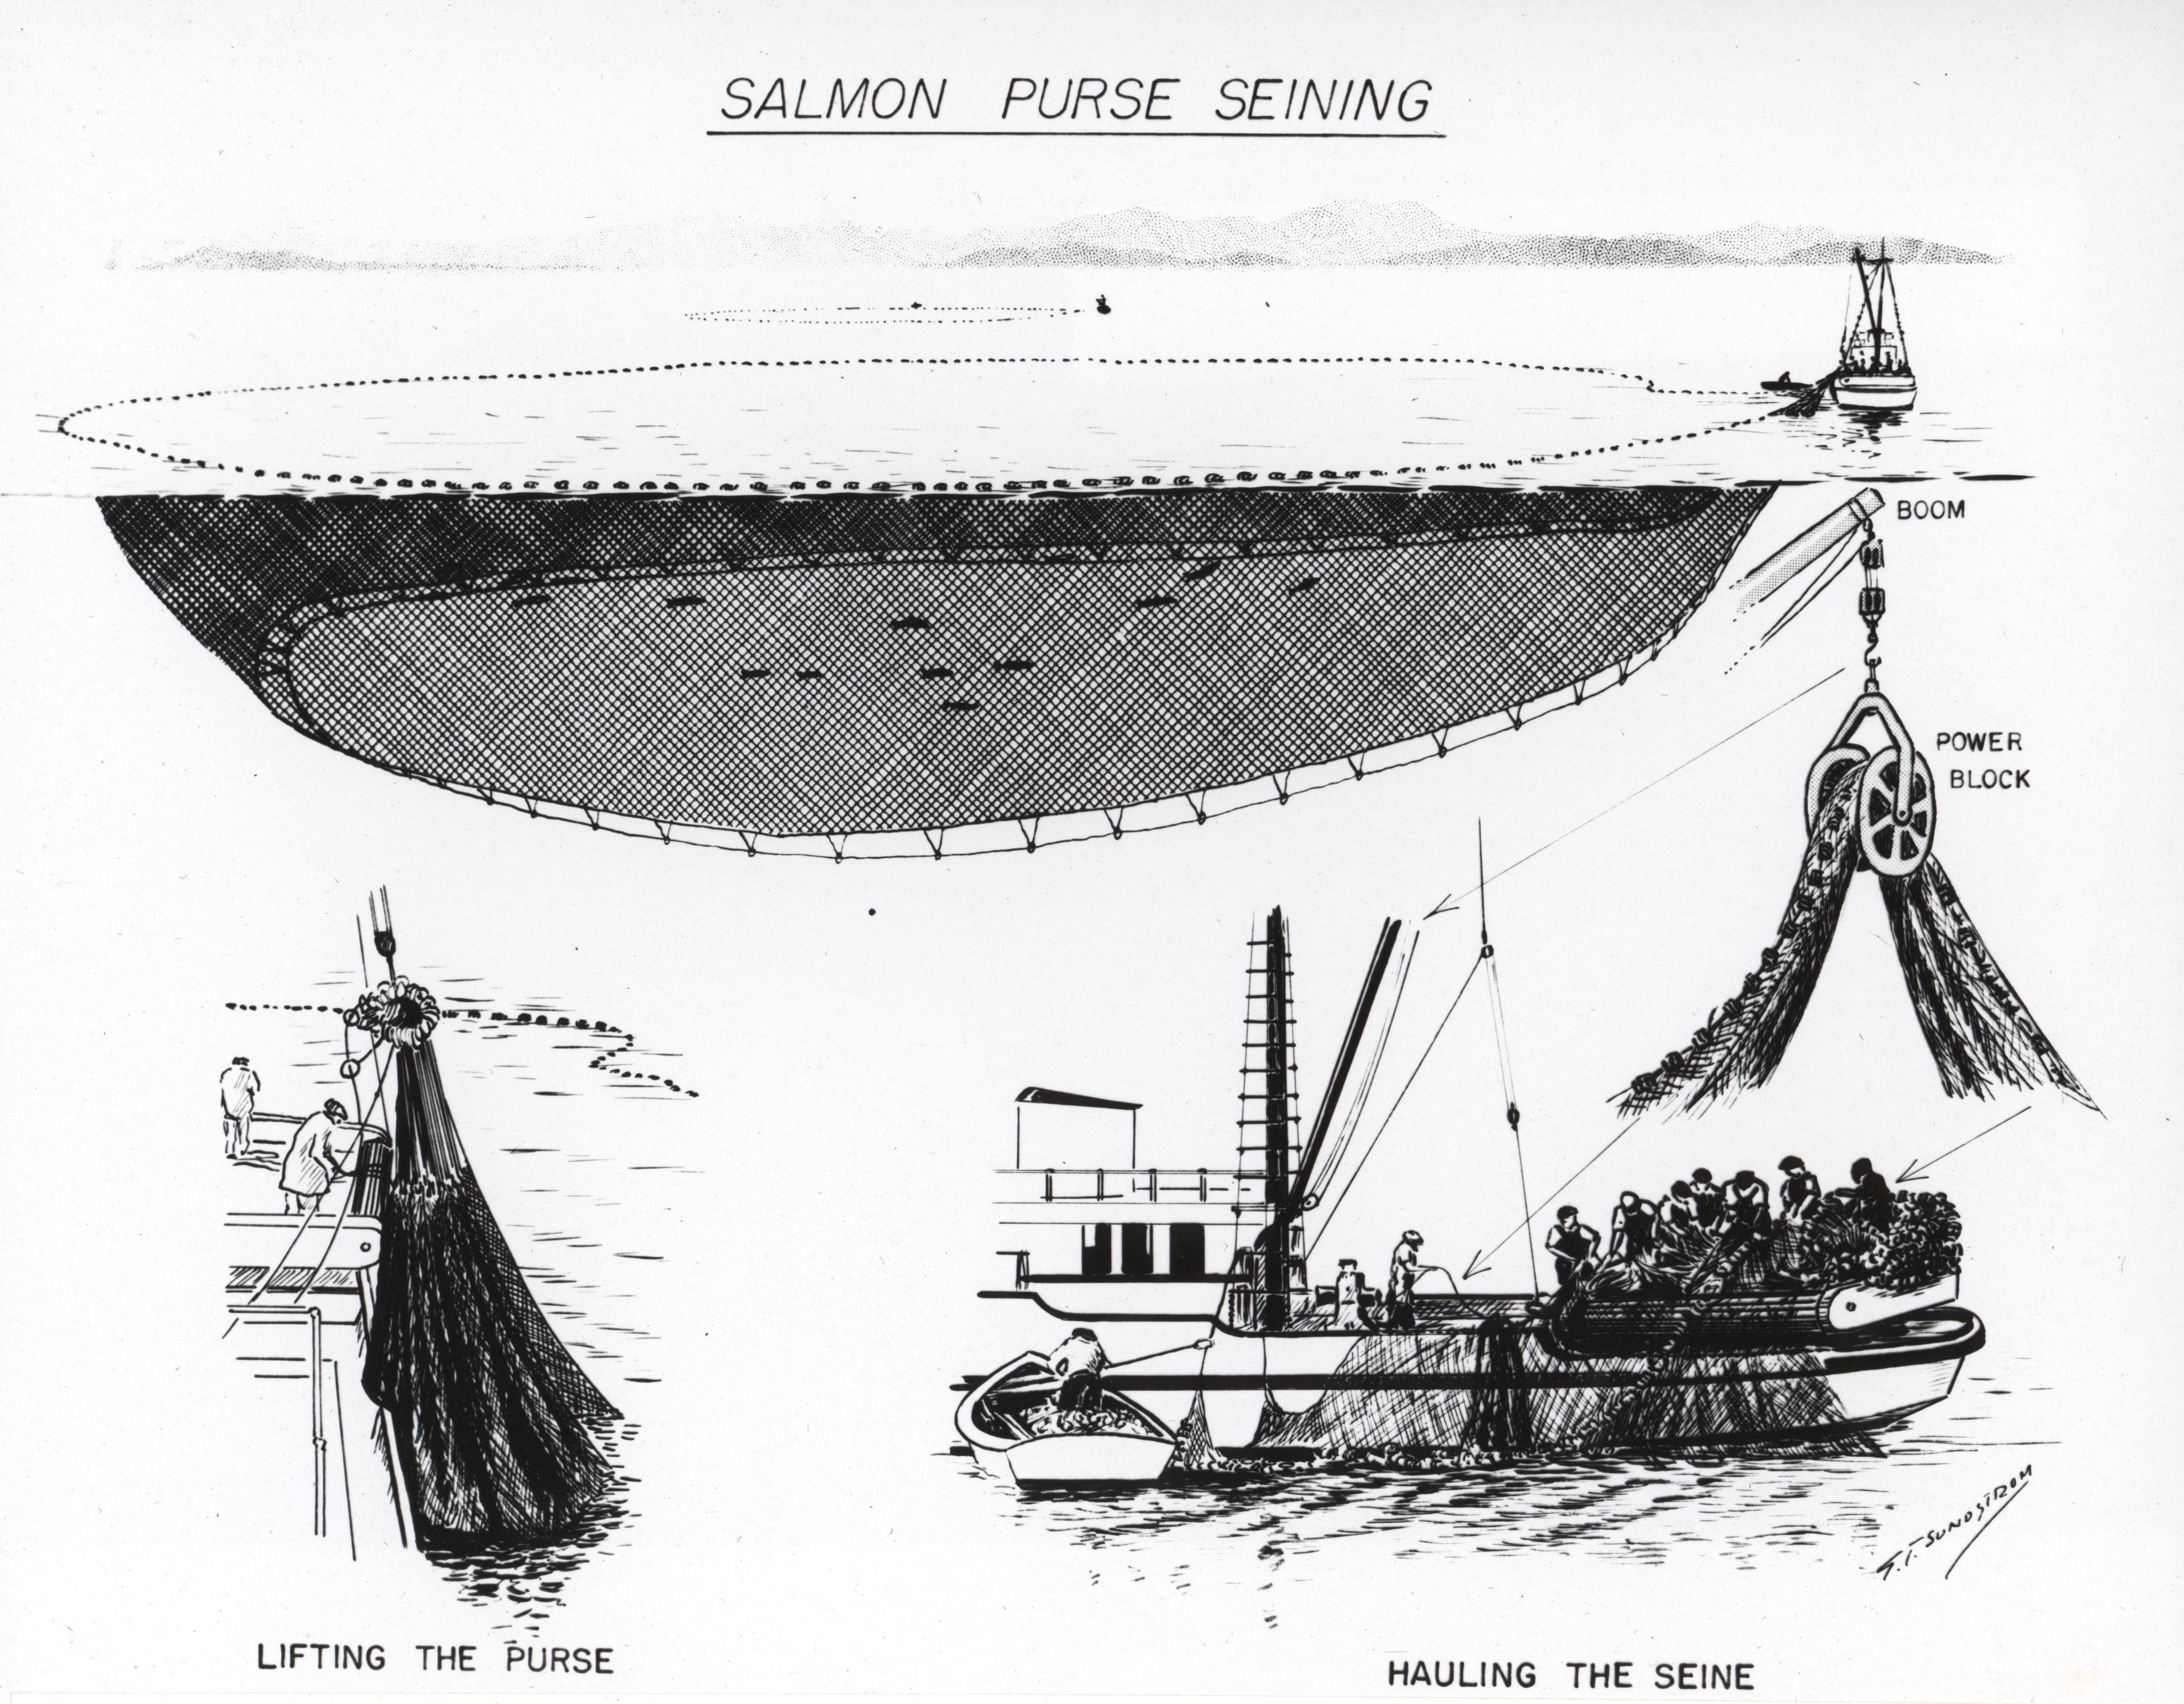 File Diagram Of Salmon Purse Seining